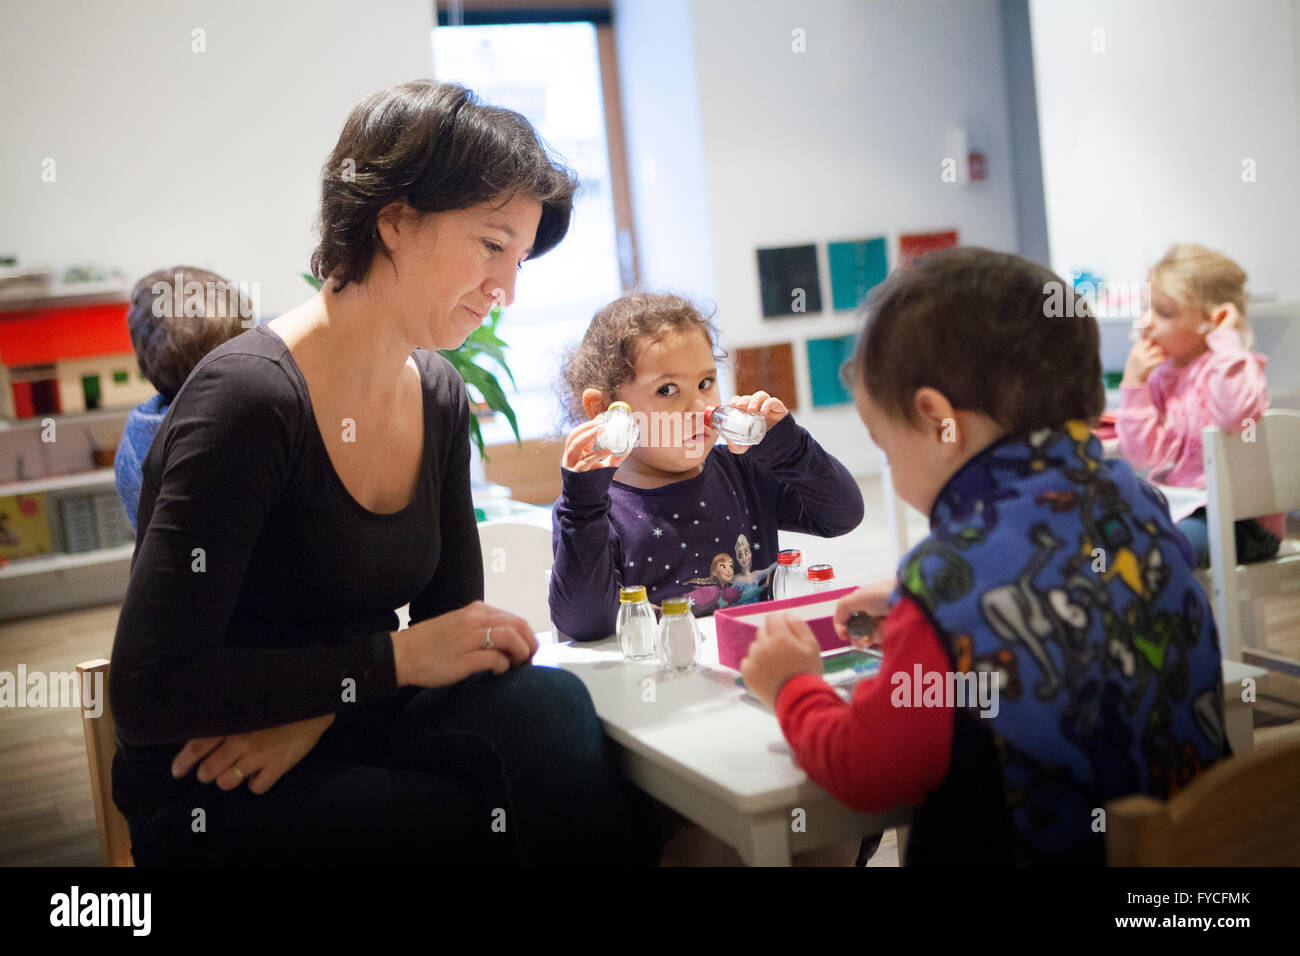 NURSERY SCHOOL - Stock Image